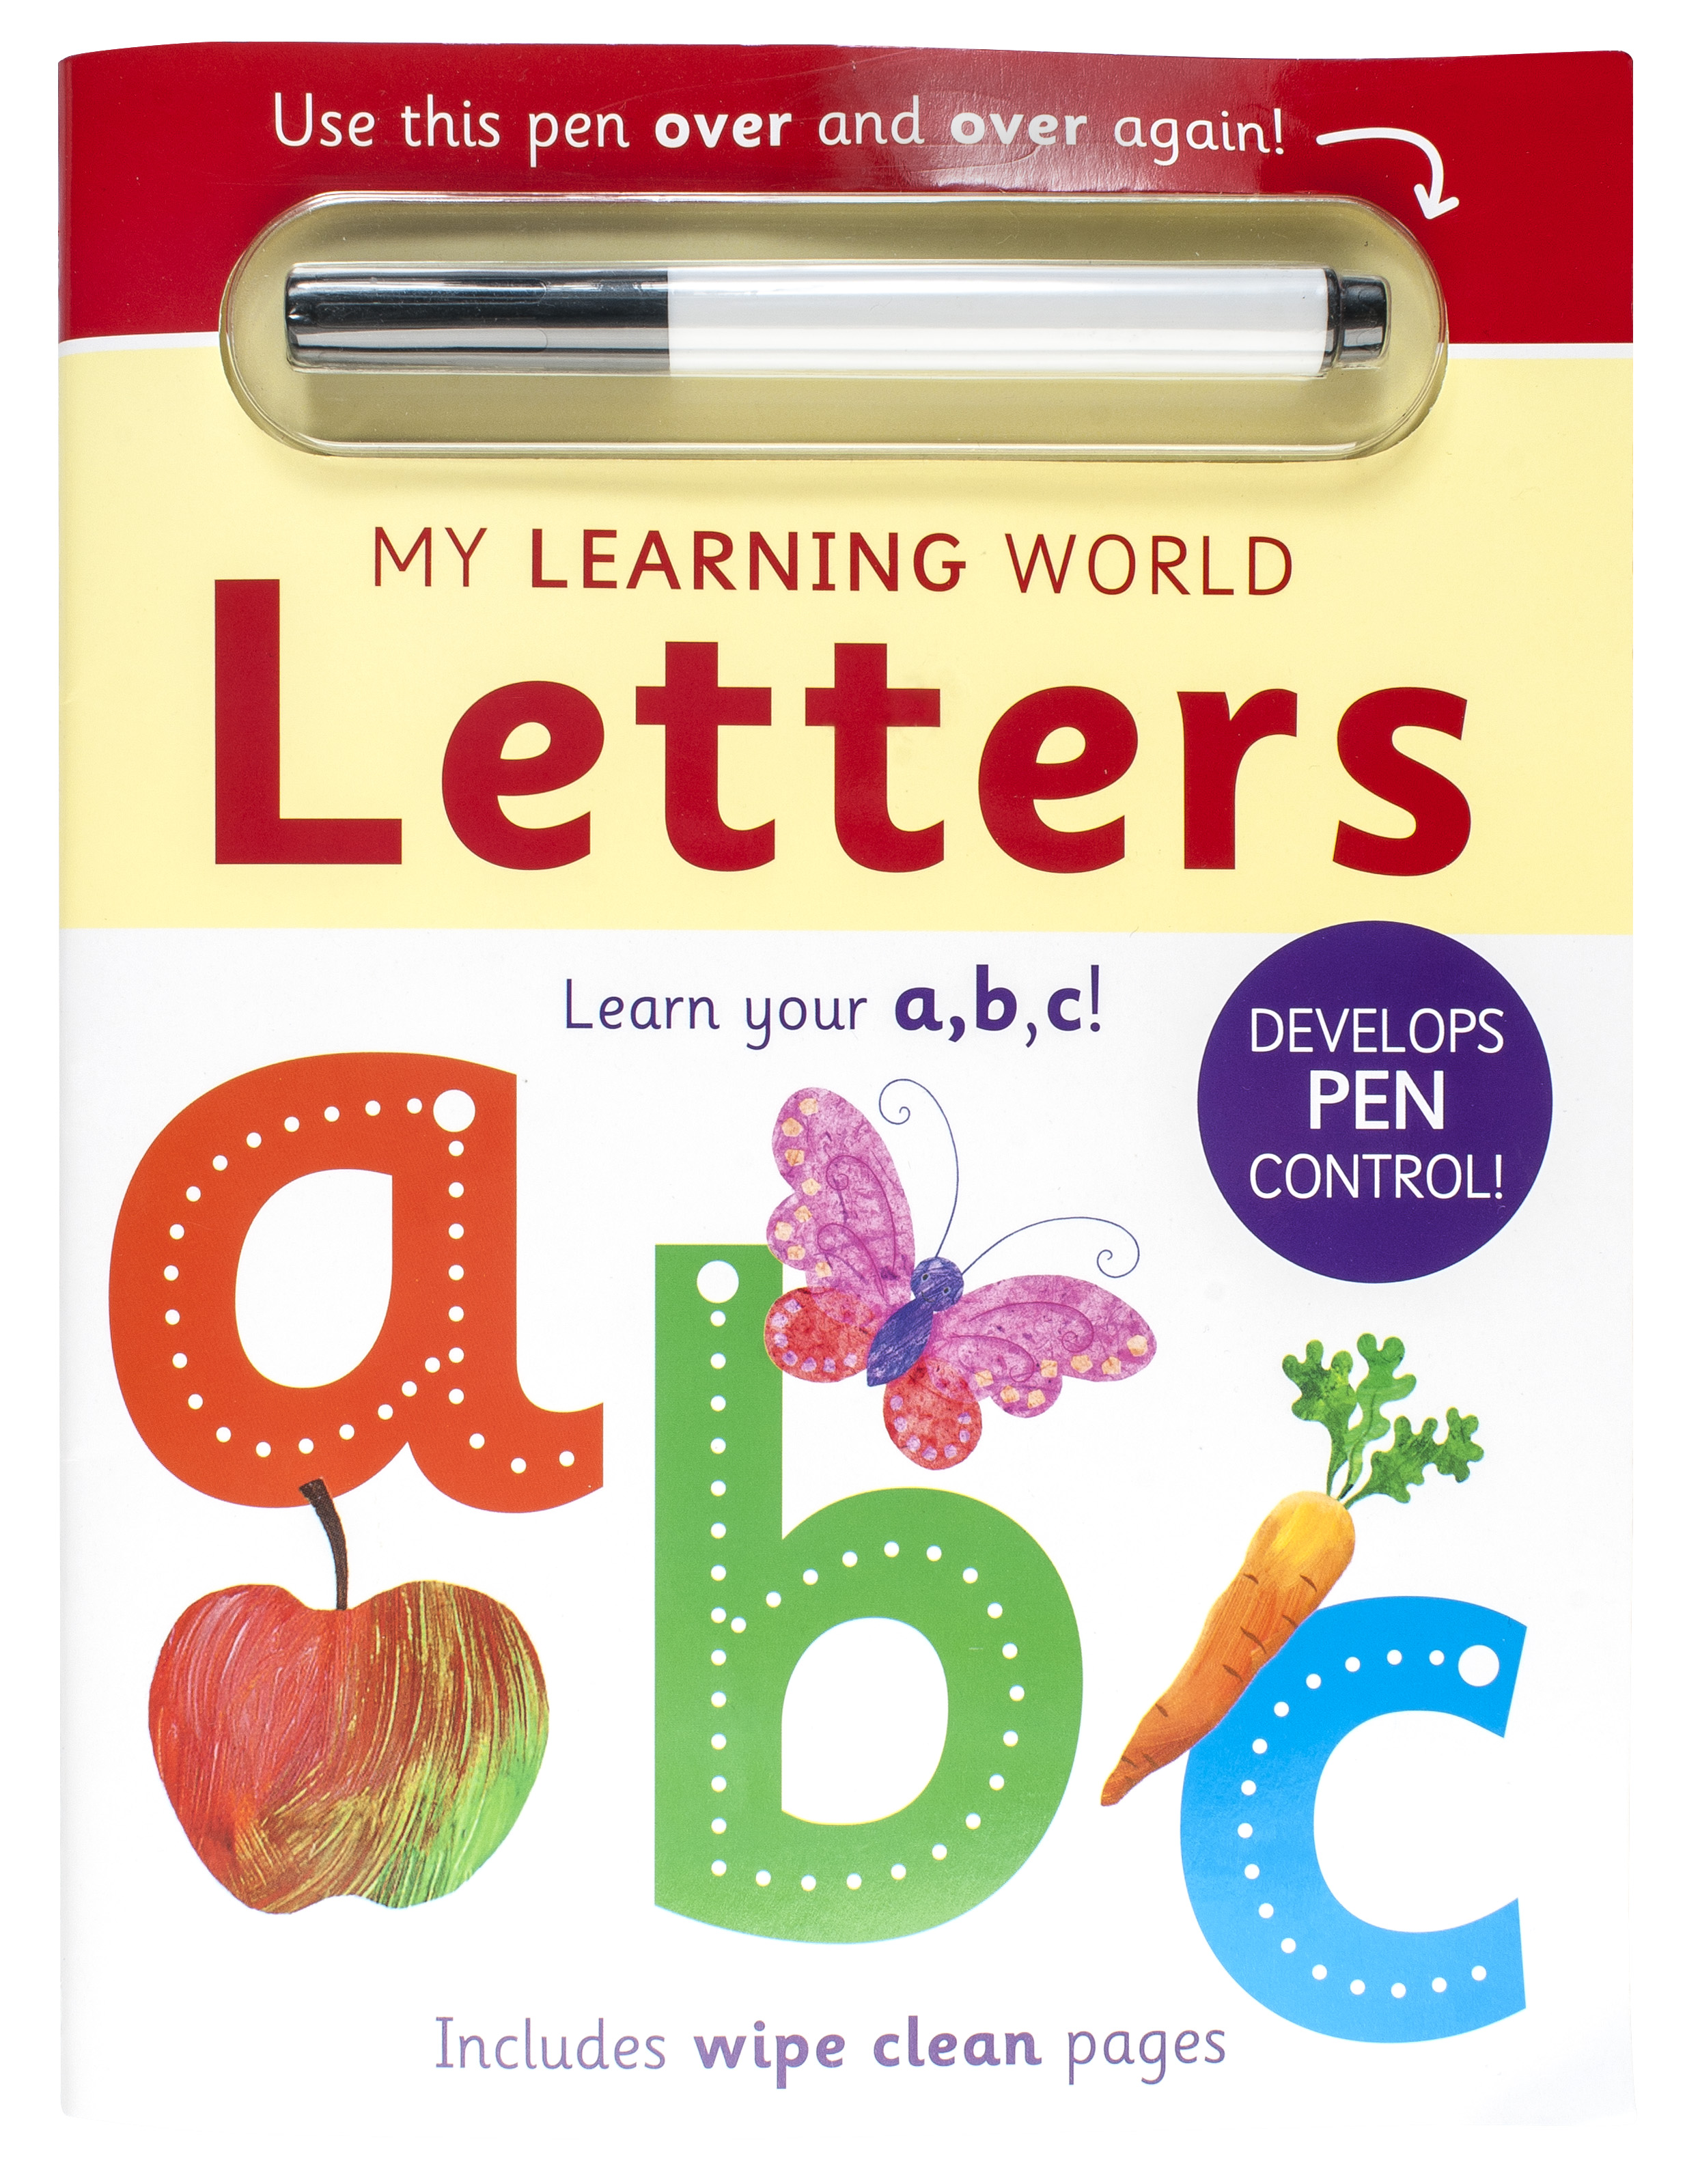 My Learning World Letters